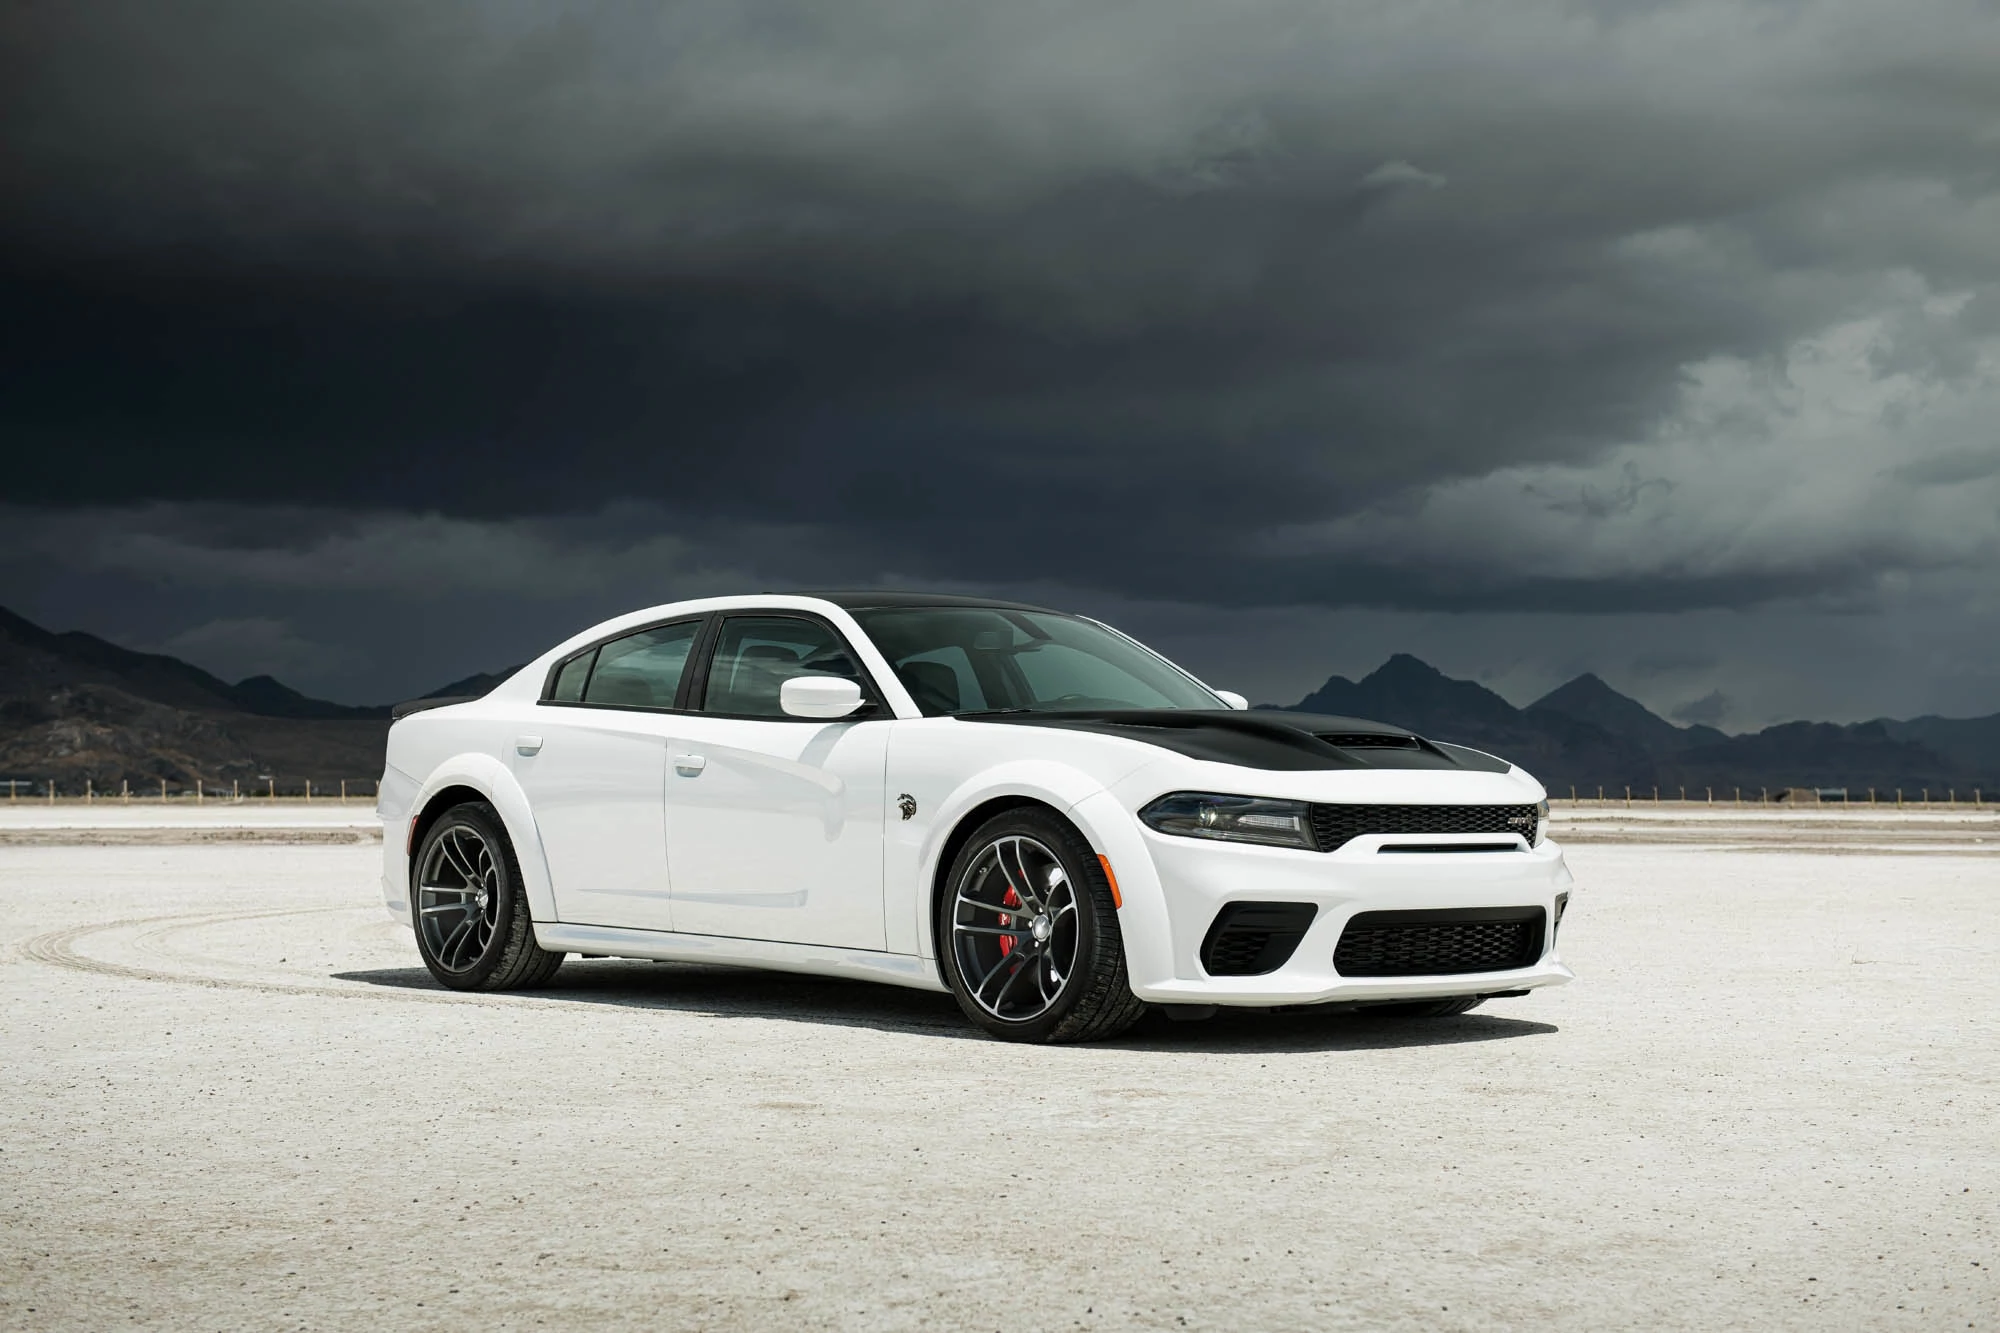 2021 Dodge Charger SRT Hellcat Redeye: You're Not Actually Surprised, Are You?